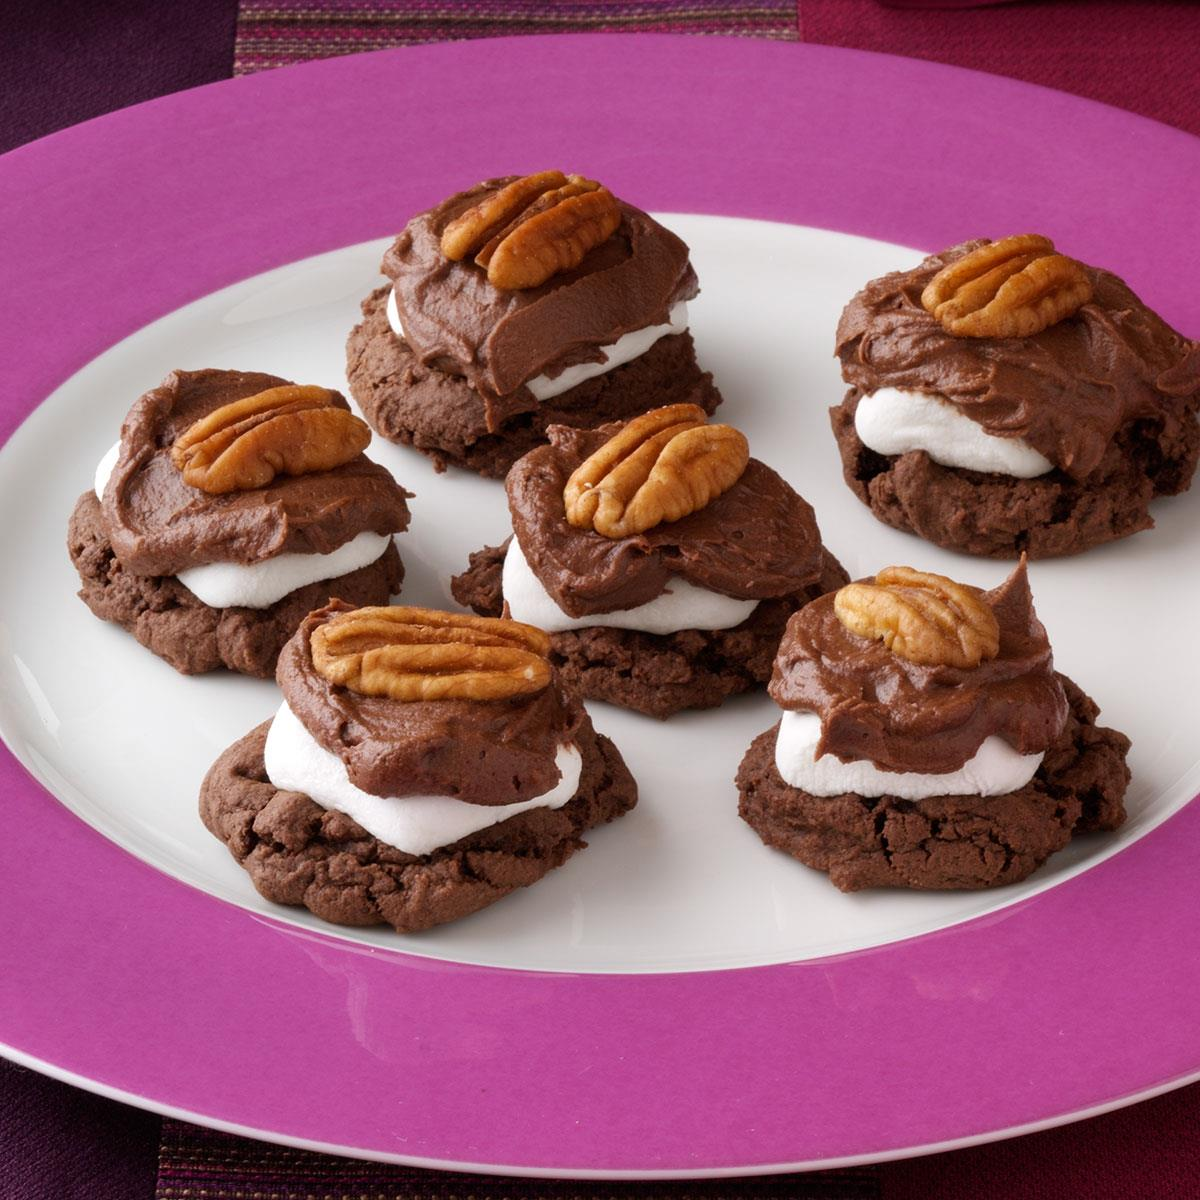 Chocolate-Covered Marshmallow Cookies image